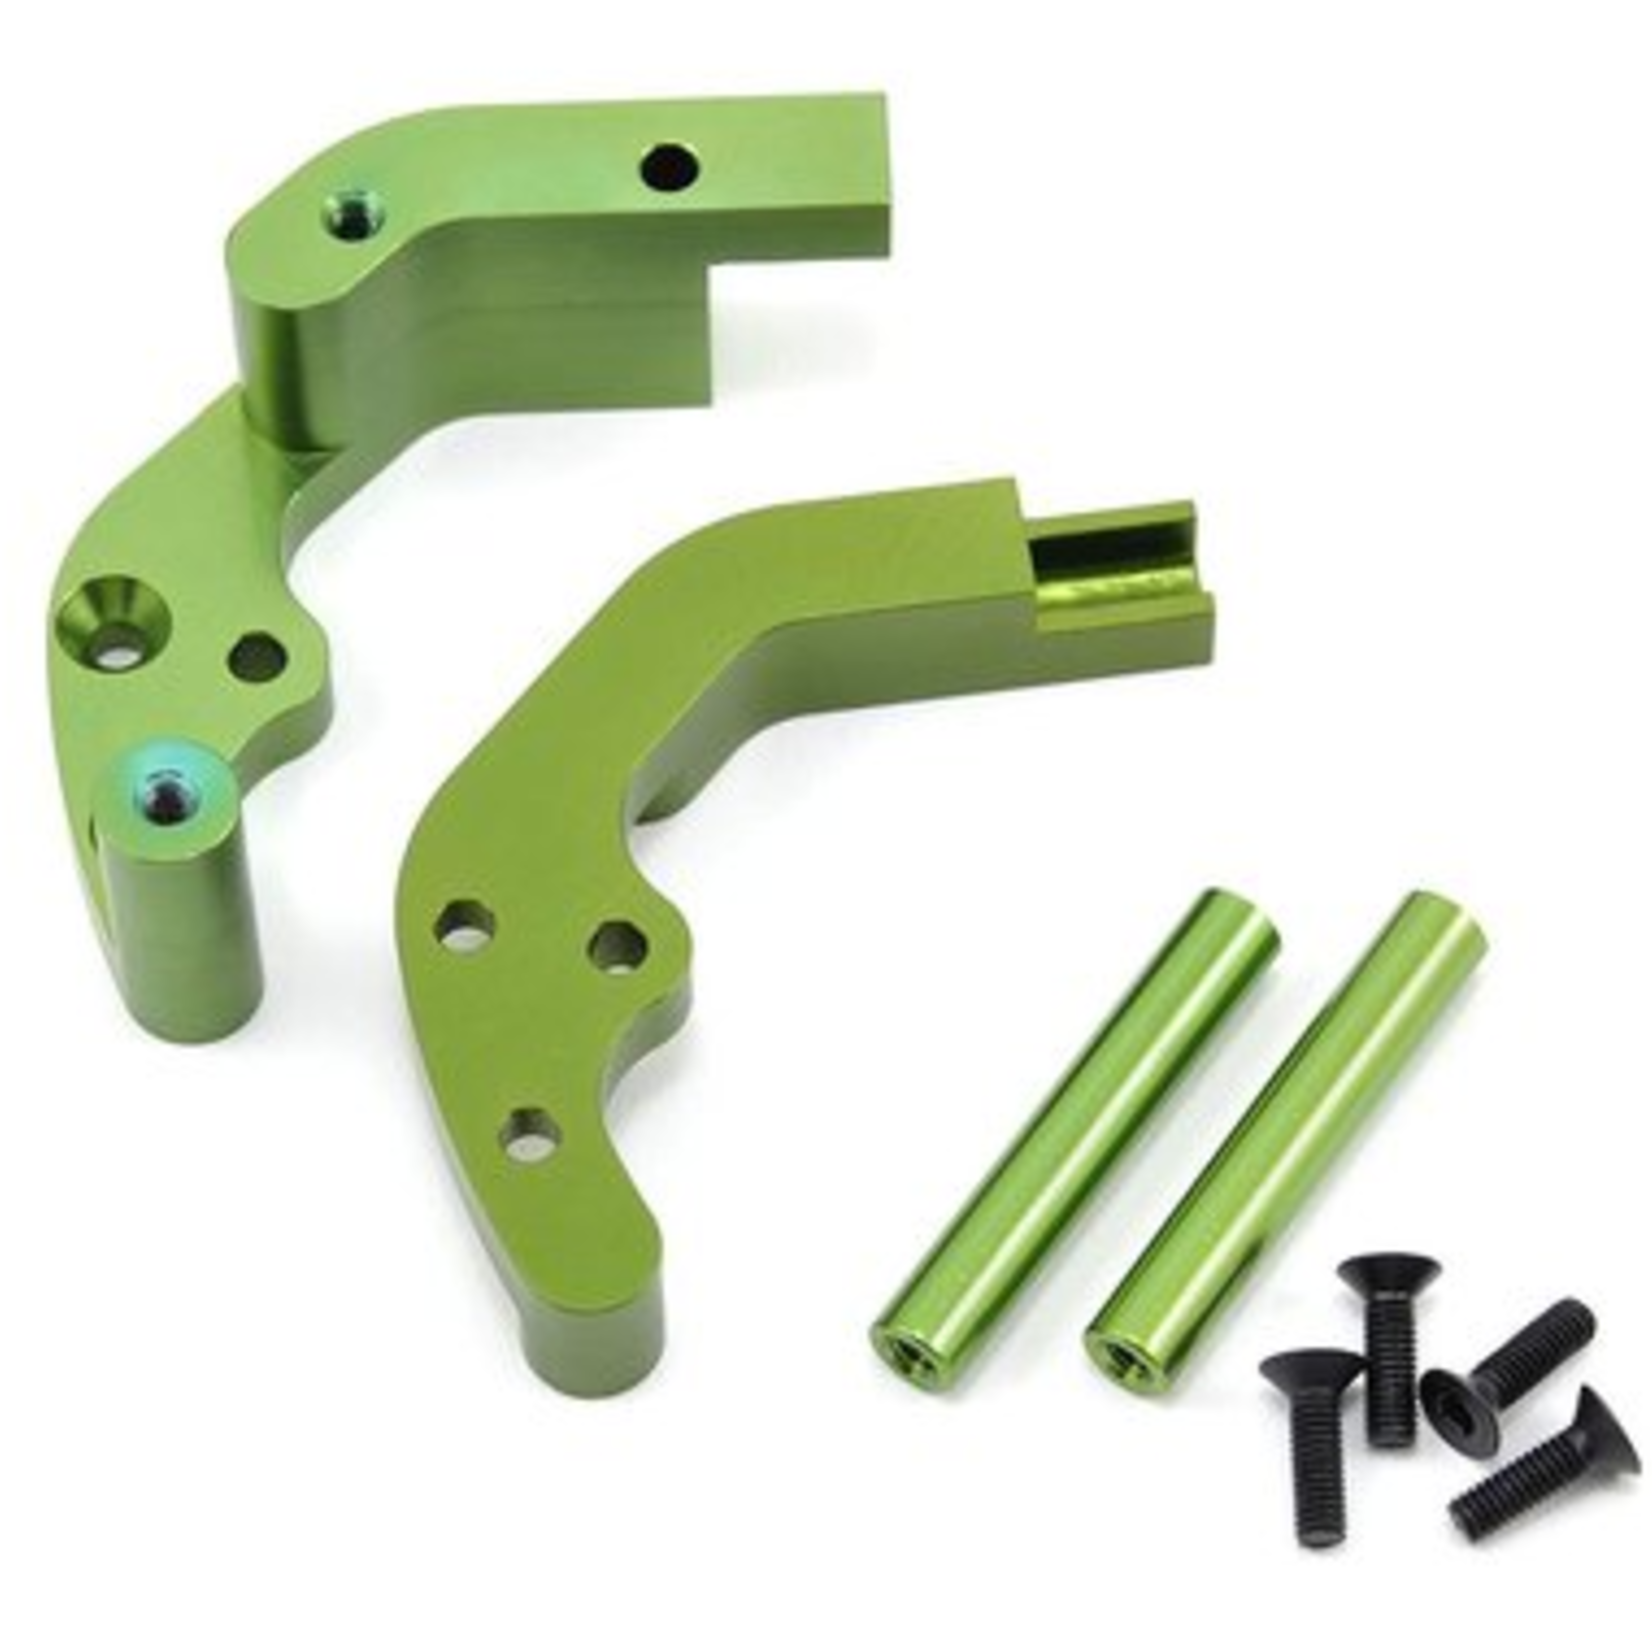 ST Racing Concepts SPTST3677G ST Racing Concepts CNC Machined Aluminum Rear Motor Guard for Traxxas cars/trucks (Green)